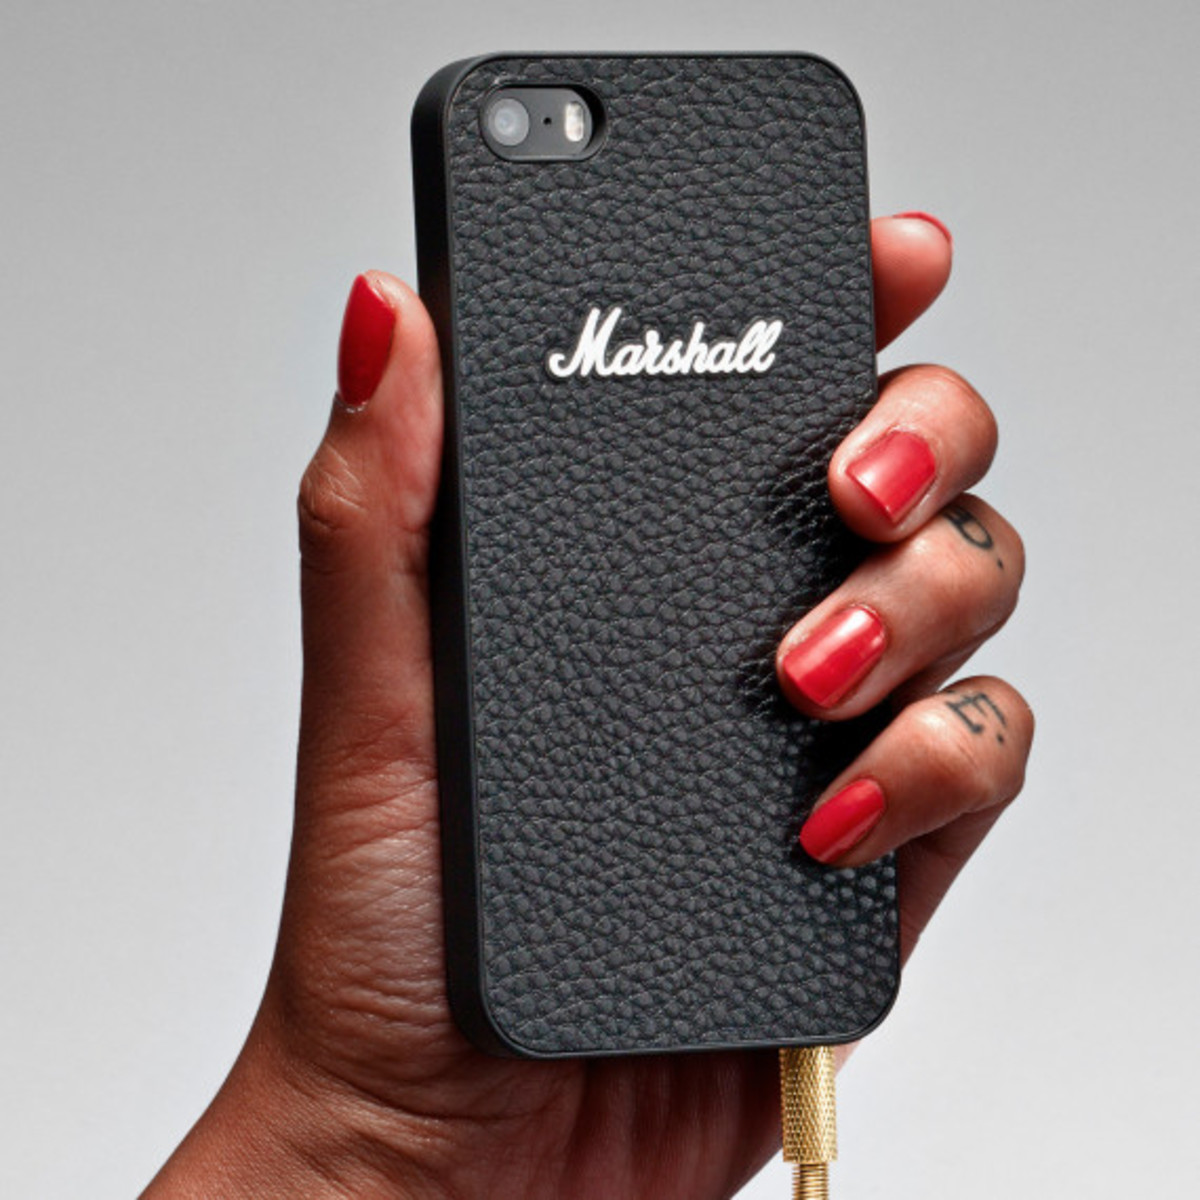 Marshall Phone Case - For Apple iPhone 5/5S & Samsung Galaxy S4 - 4